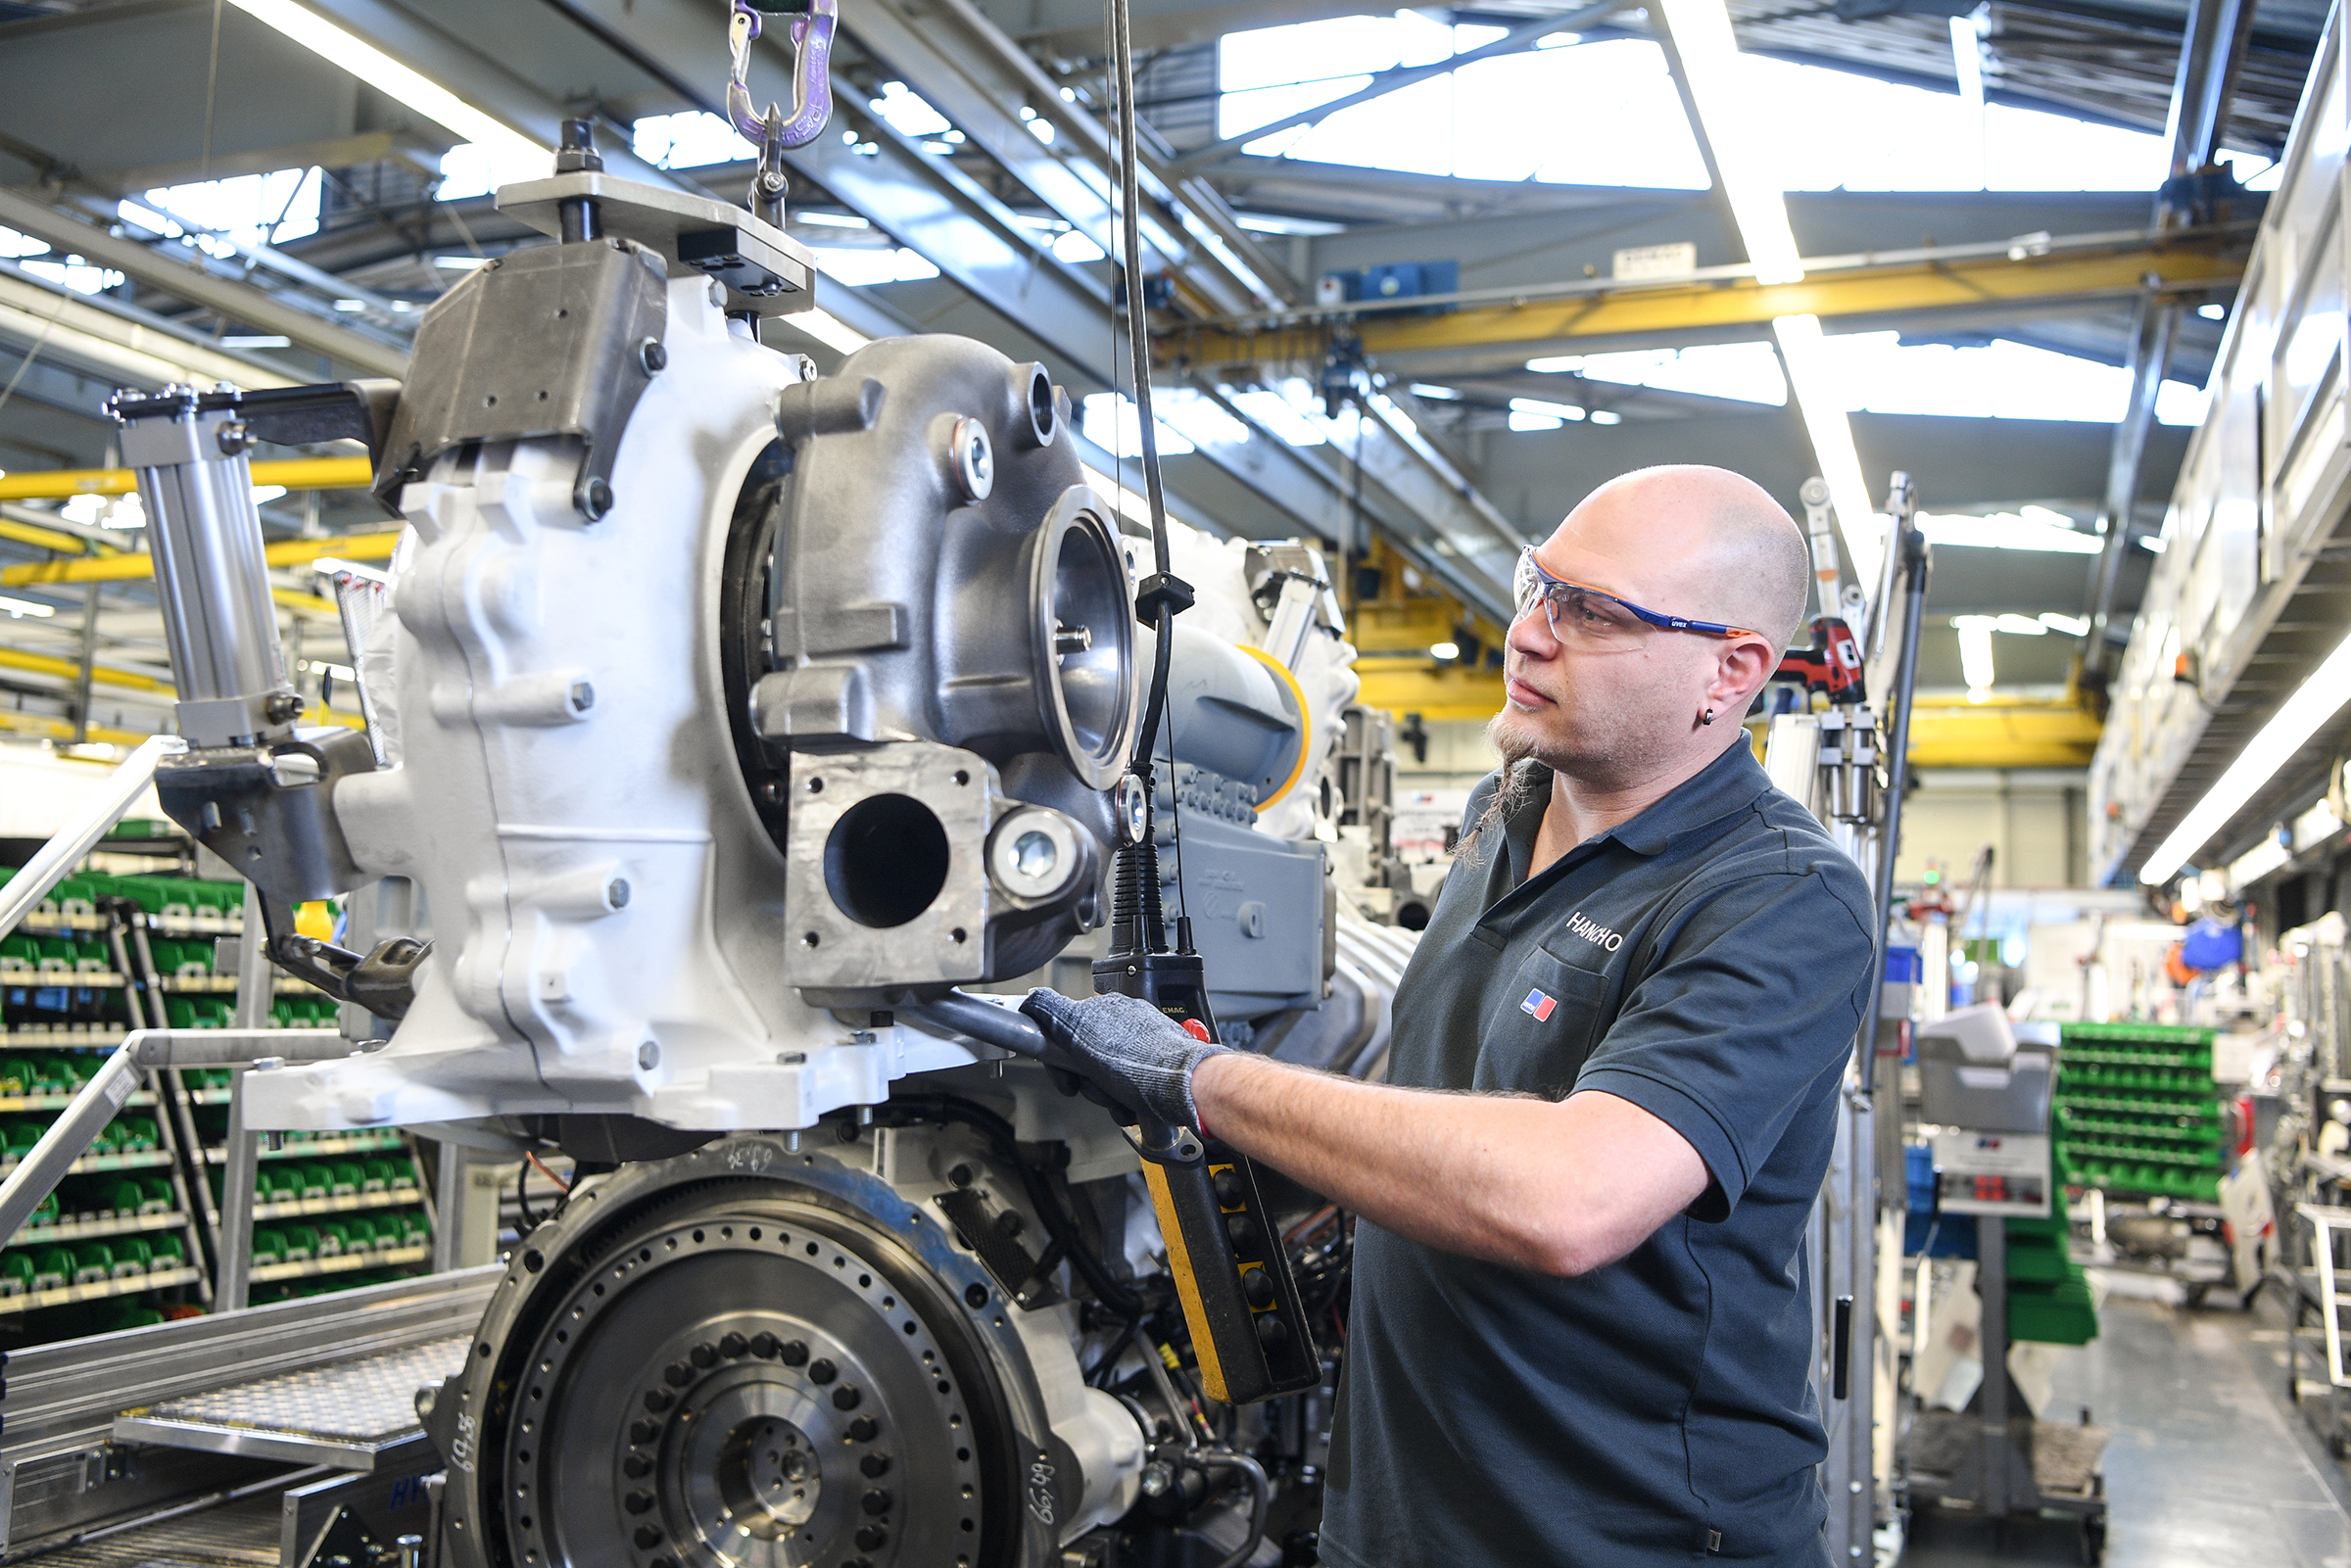 Rolls-Royce and MAN to cooperate on turbochargers